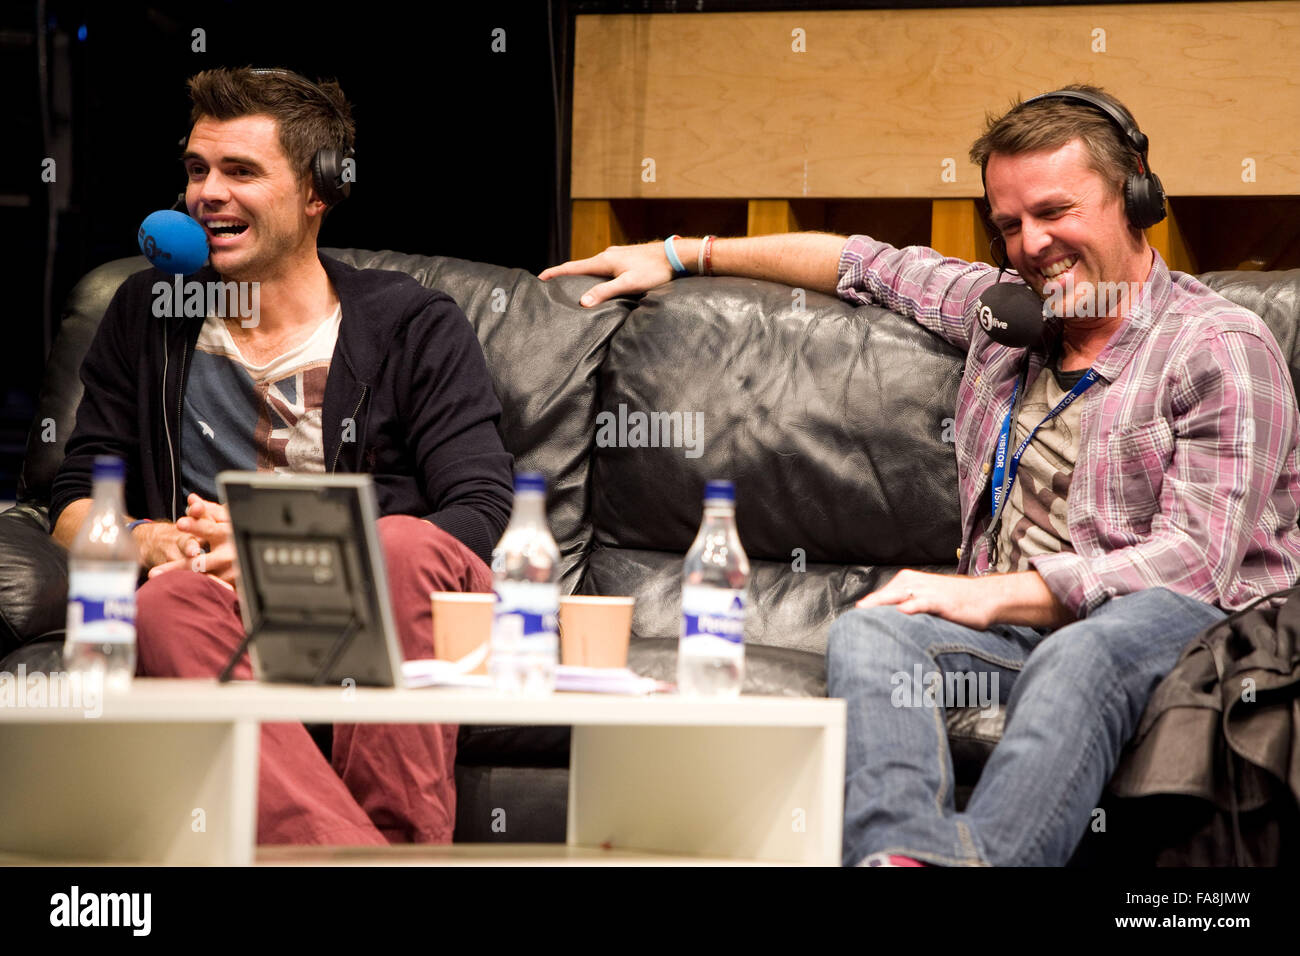 BBC Radio 5 Live Octoberfest in Sheffield Thursday Jimmy James Anderson and Graeme Swann - Stock Image